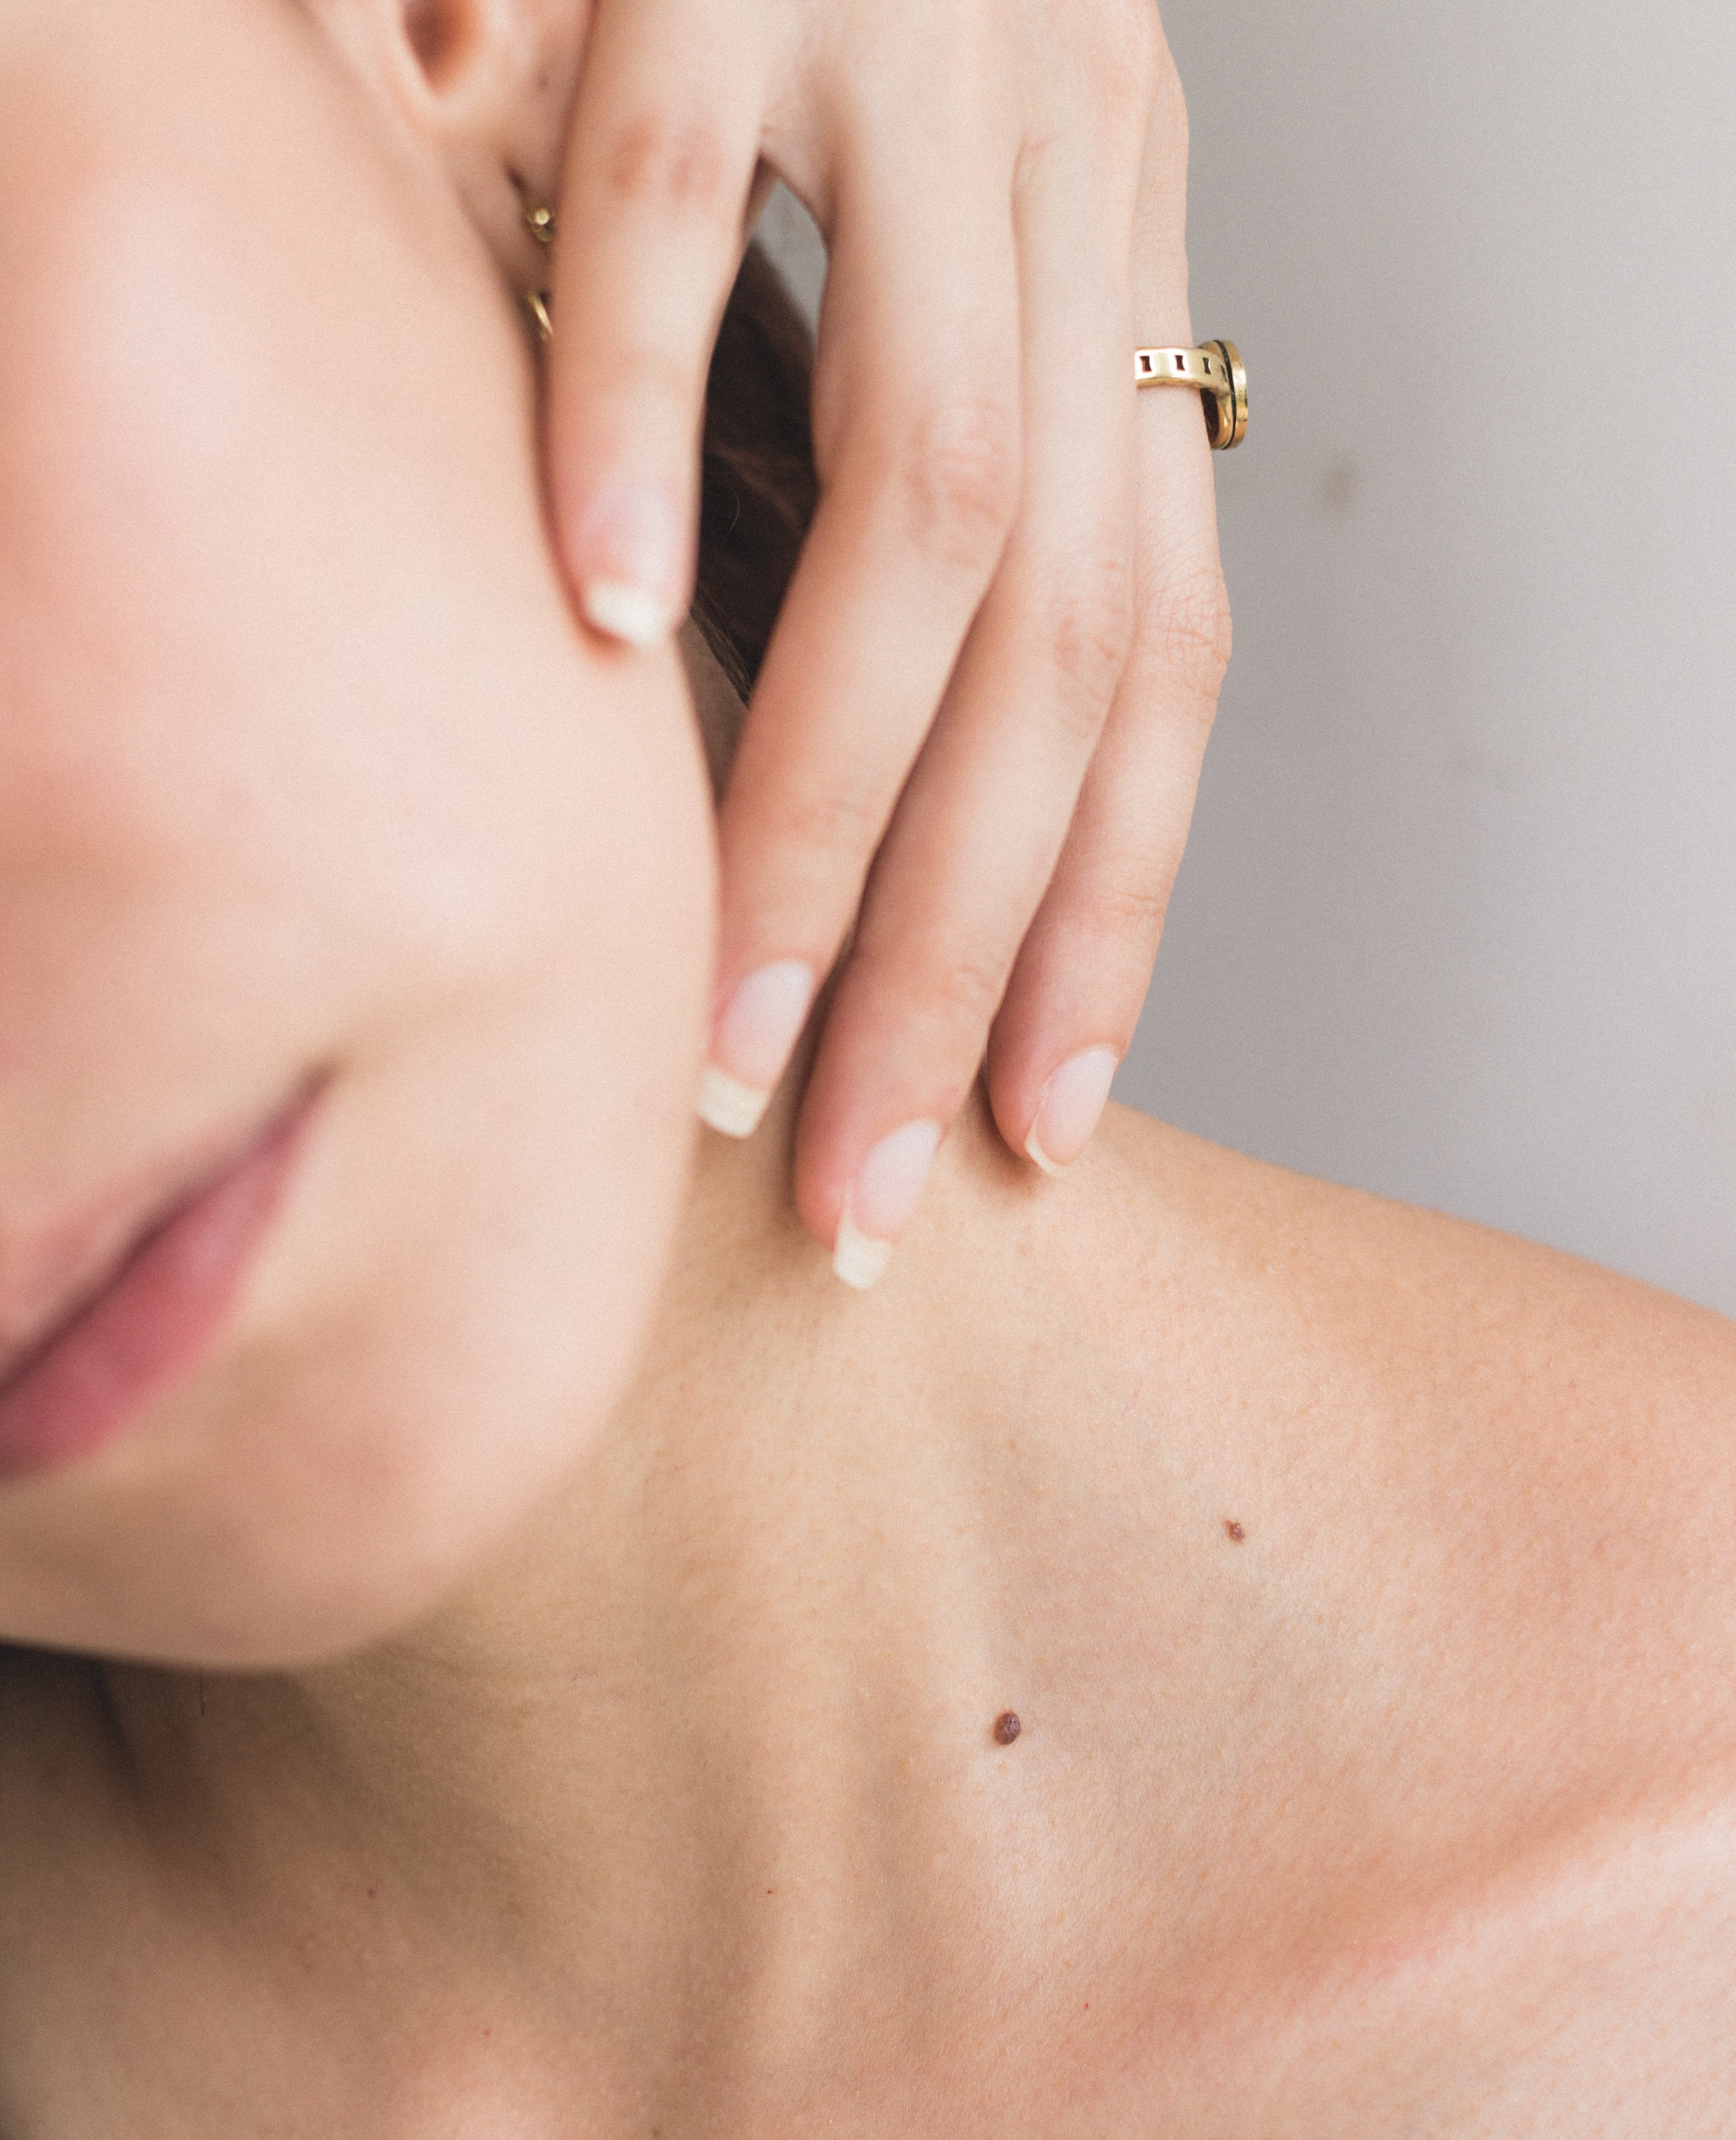 How to Check if Your Moles Are Getting Bigger